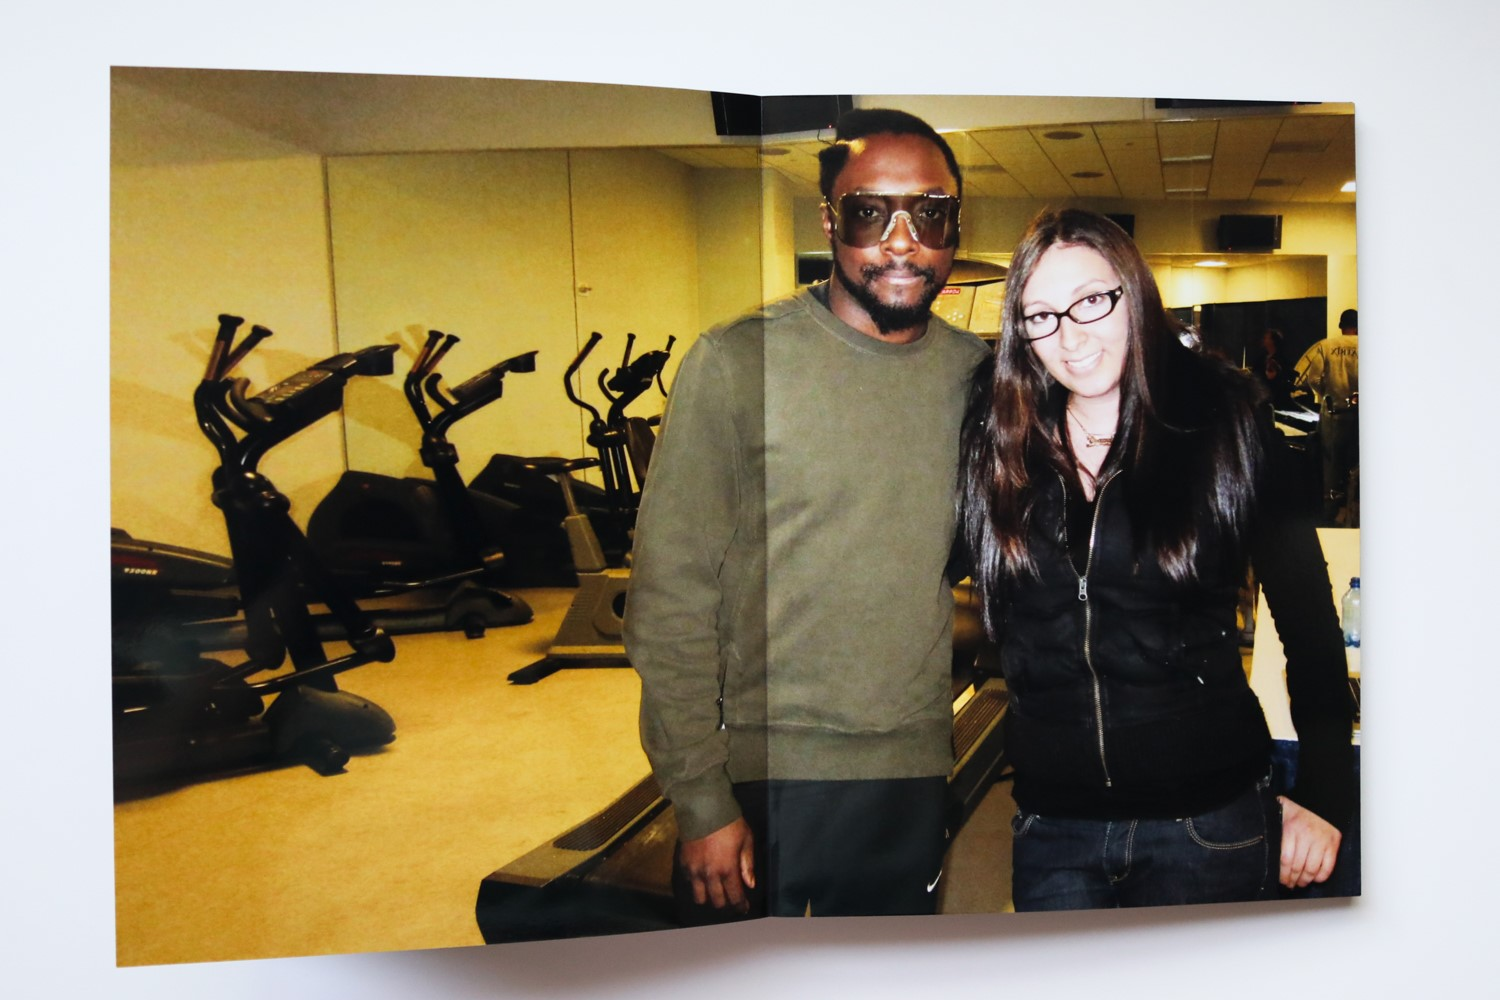 Behind the scenes: Diana Levine and Will.i.am of the Black Eyed Peas